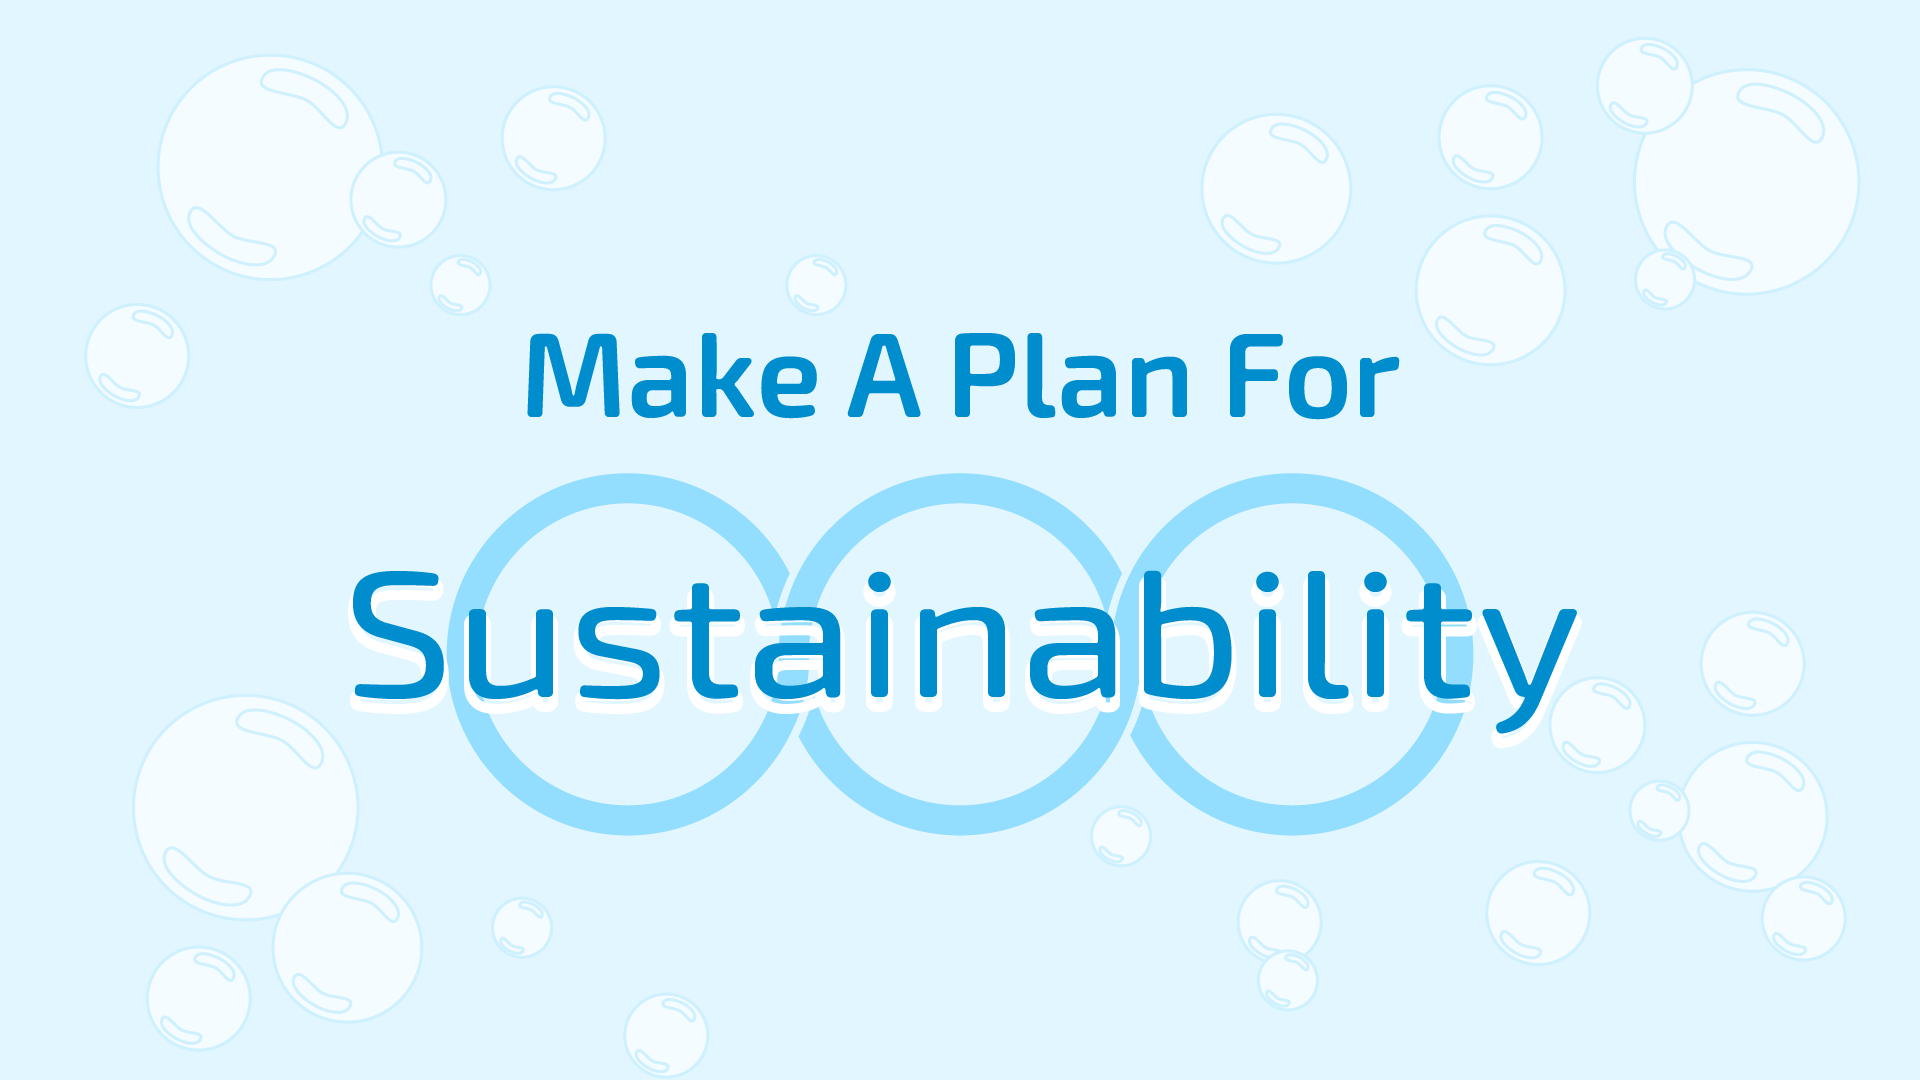 Make A Plan For Sustainability